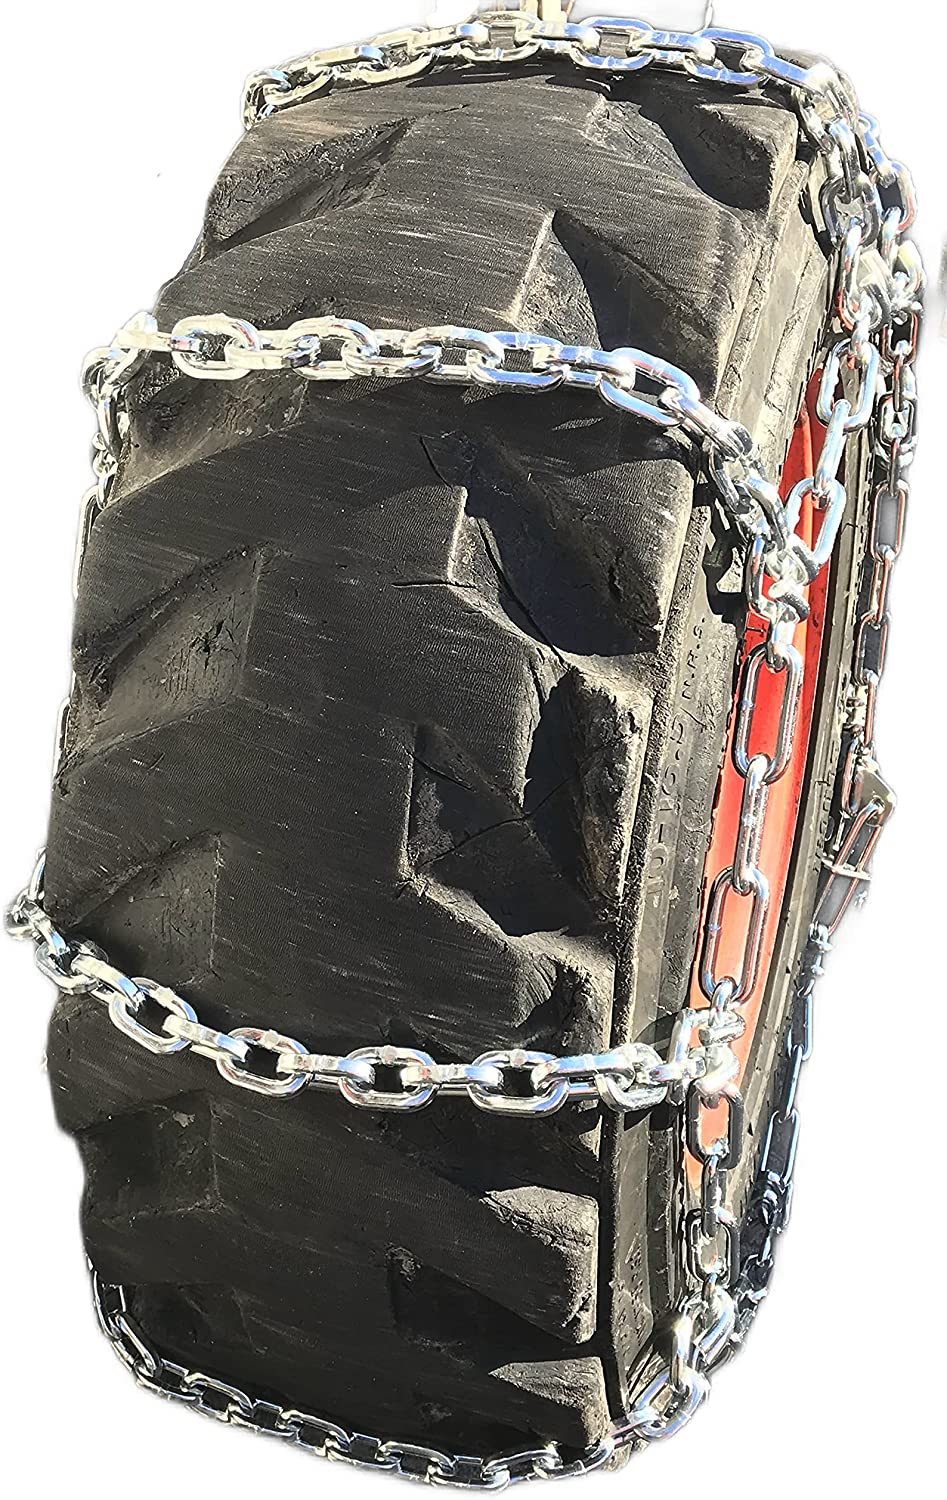 TireChain.com 7-15 Forklift 7.0mm Boron Square Alloy Chains 100% Recommended quality warranty Tire